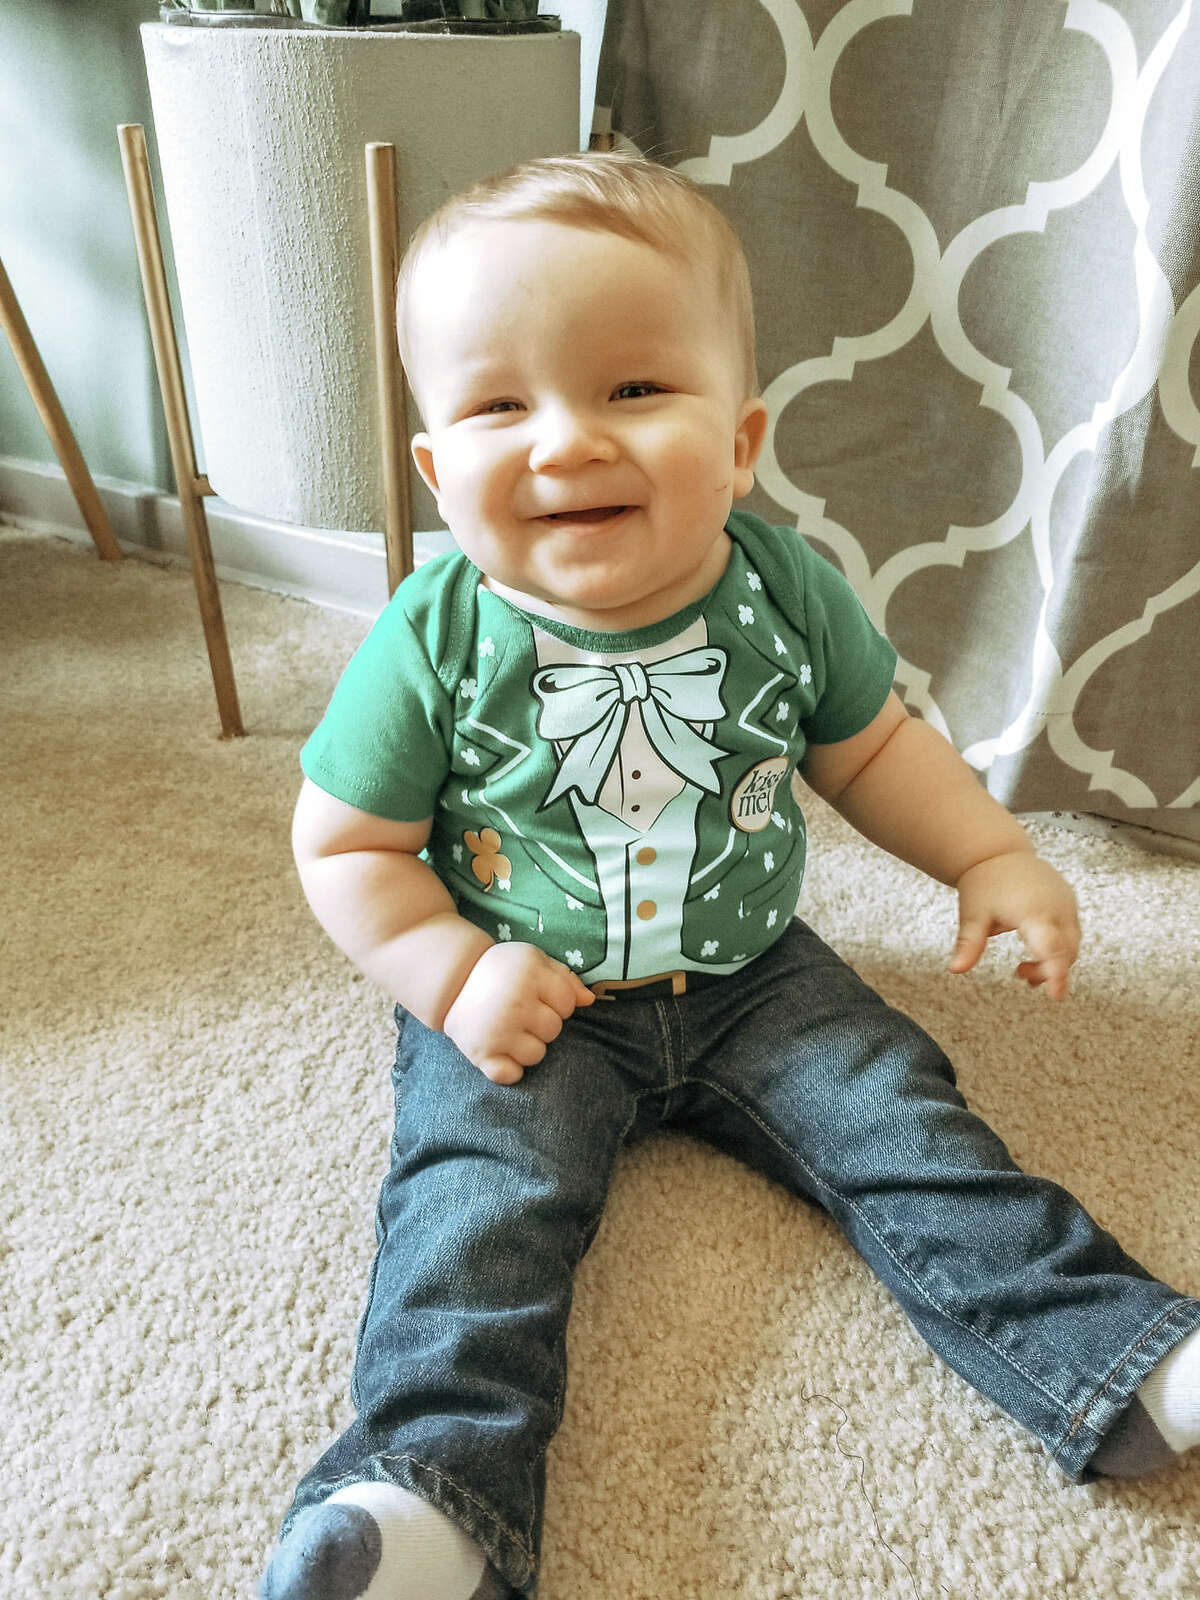 Submitted by: Nicole Aldis